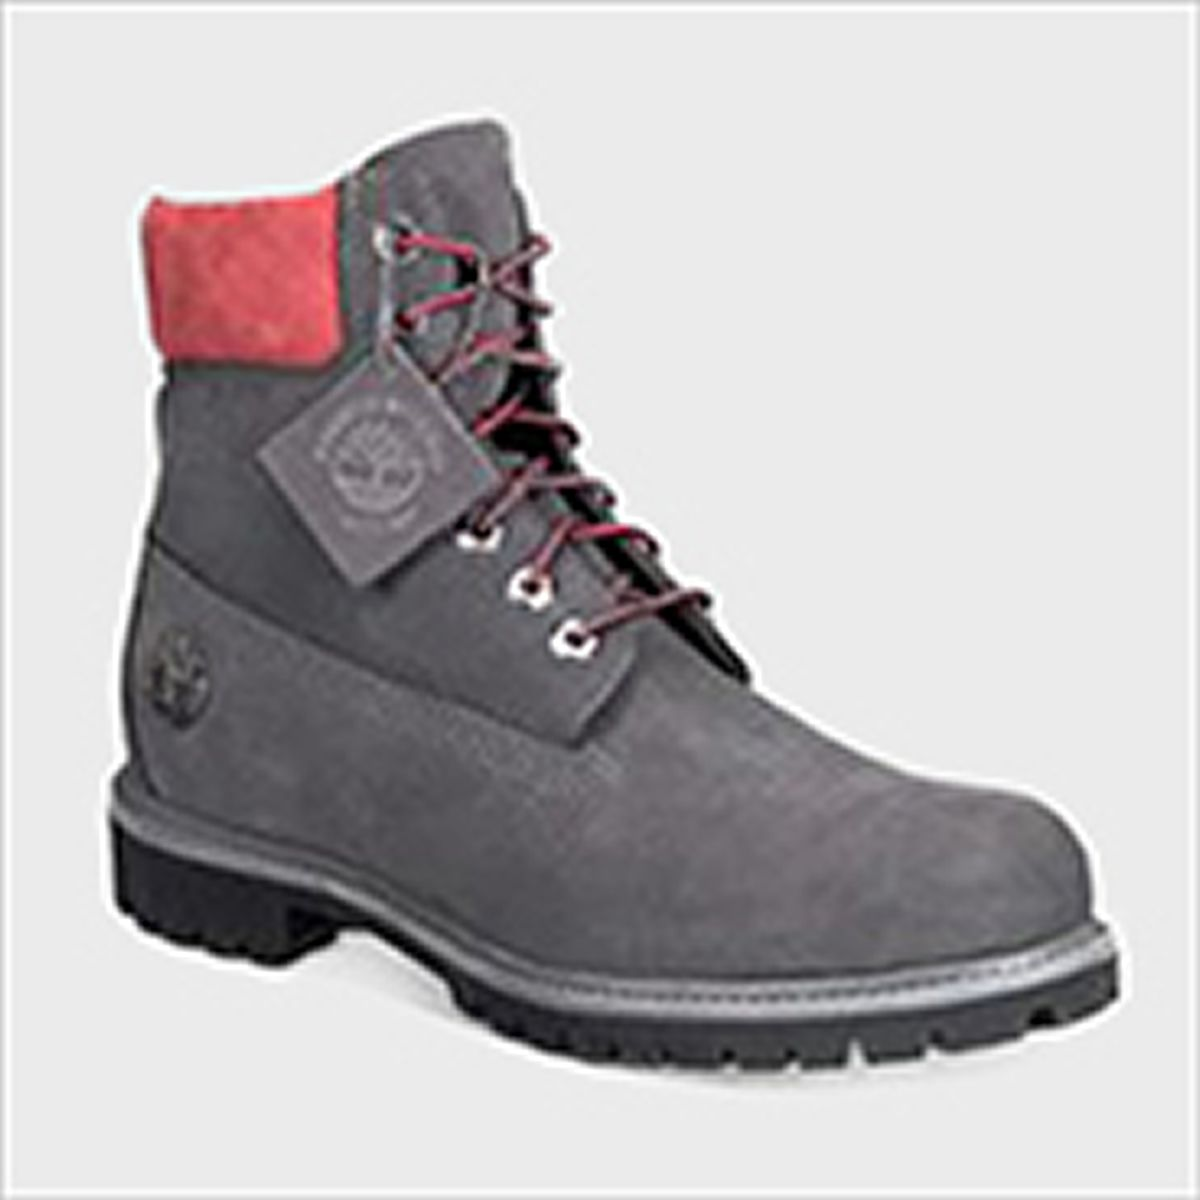 3ba1be801700 Timberland Boots and Shoes For Men - Macy s